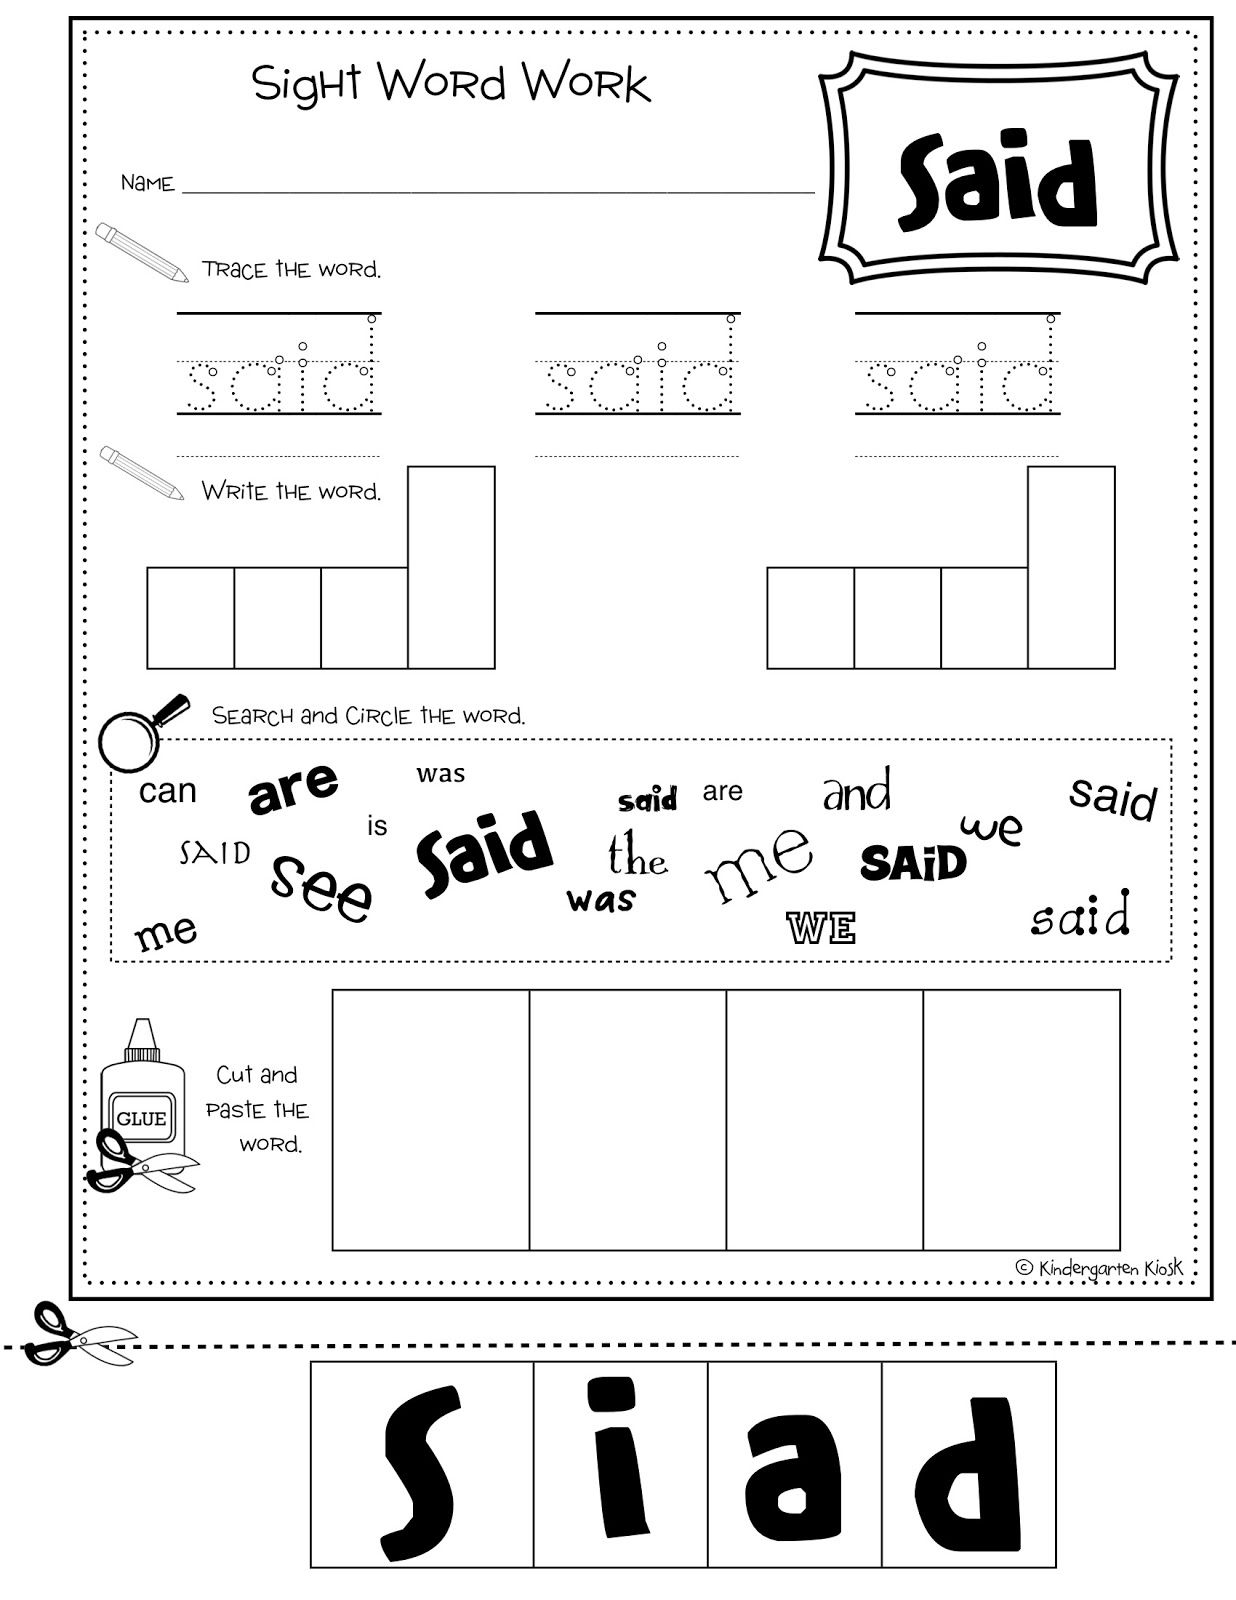 Make Sight Word Worksheets Kindergarten Kiosk Multi